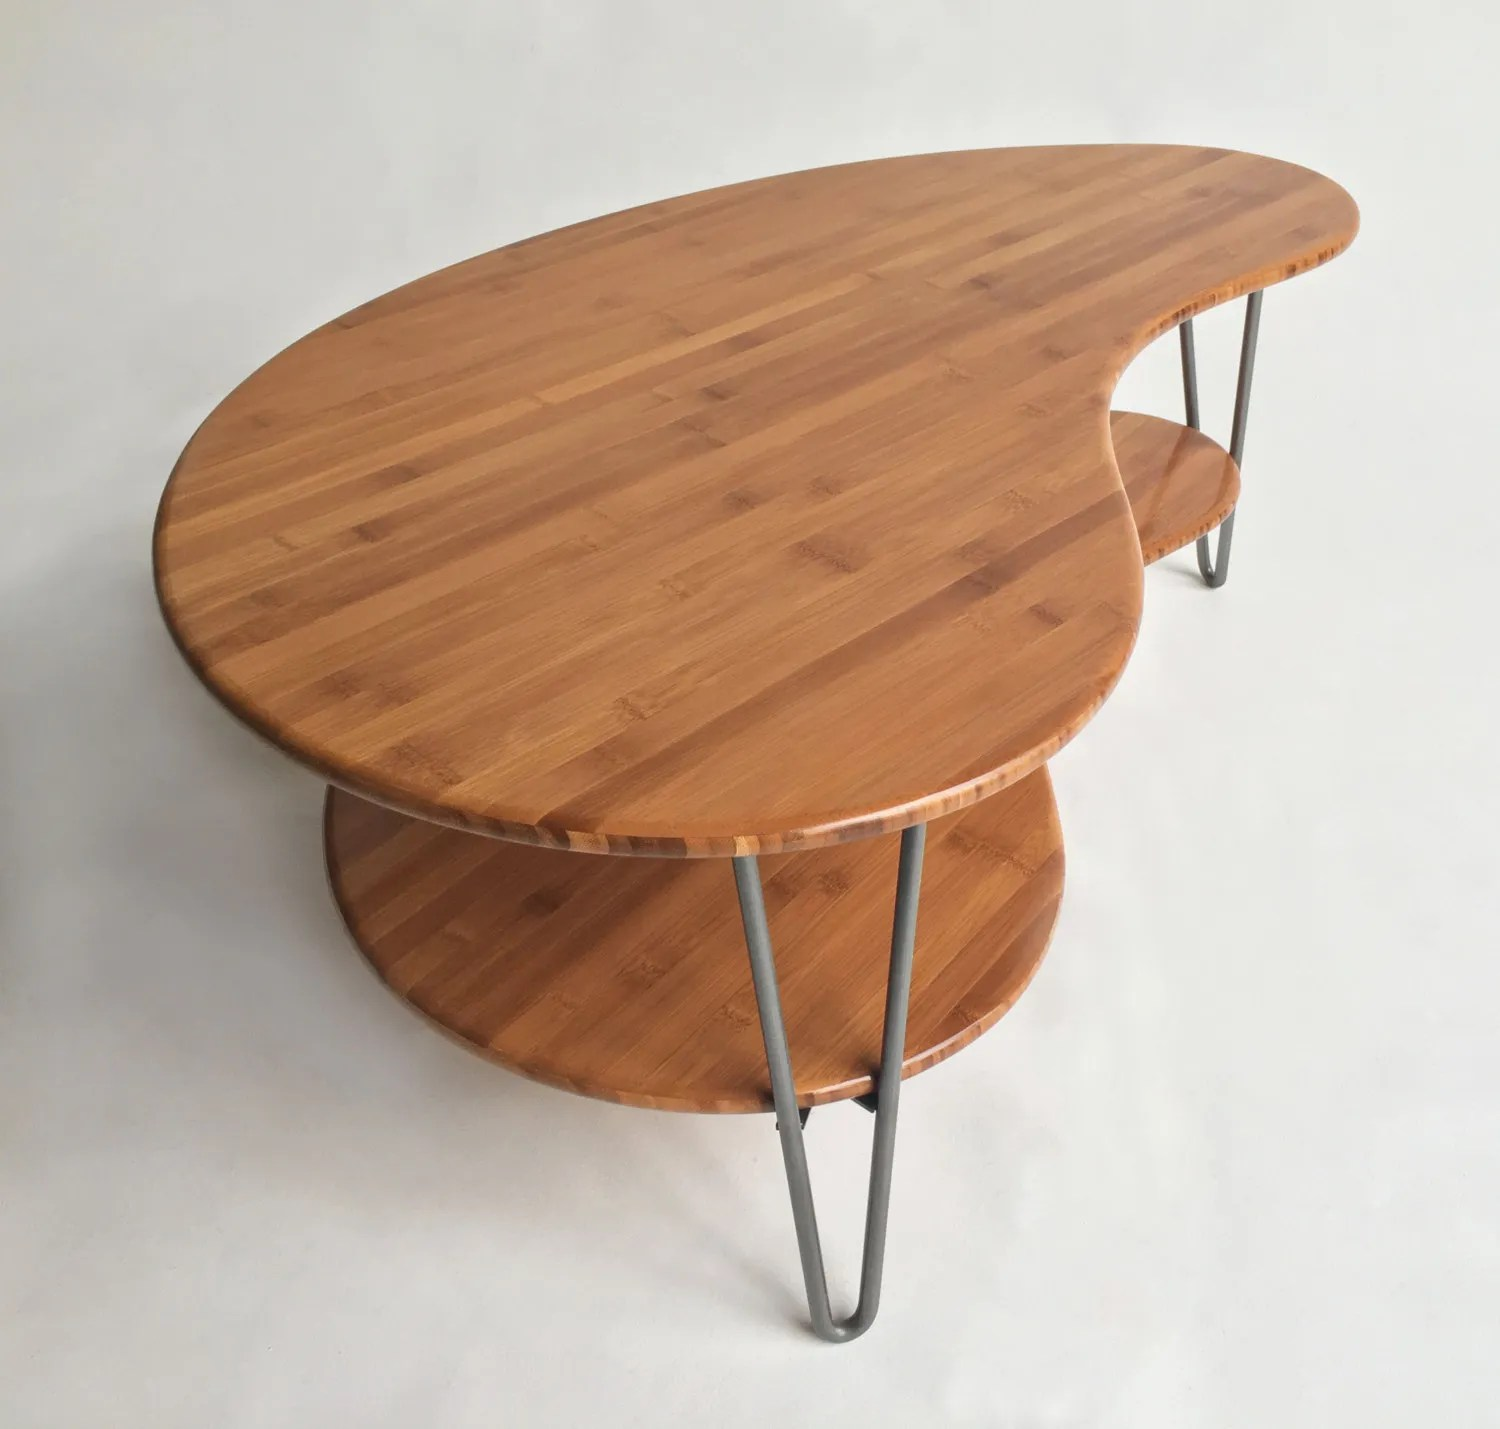 Mid Century Modern CoffeeCocktail Table Kidney Bean Shaped With - Mid century modern kidney shaped coffee table